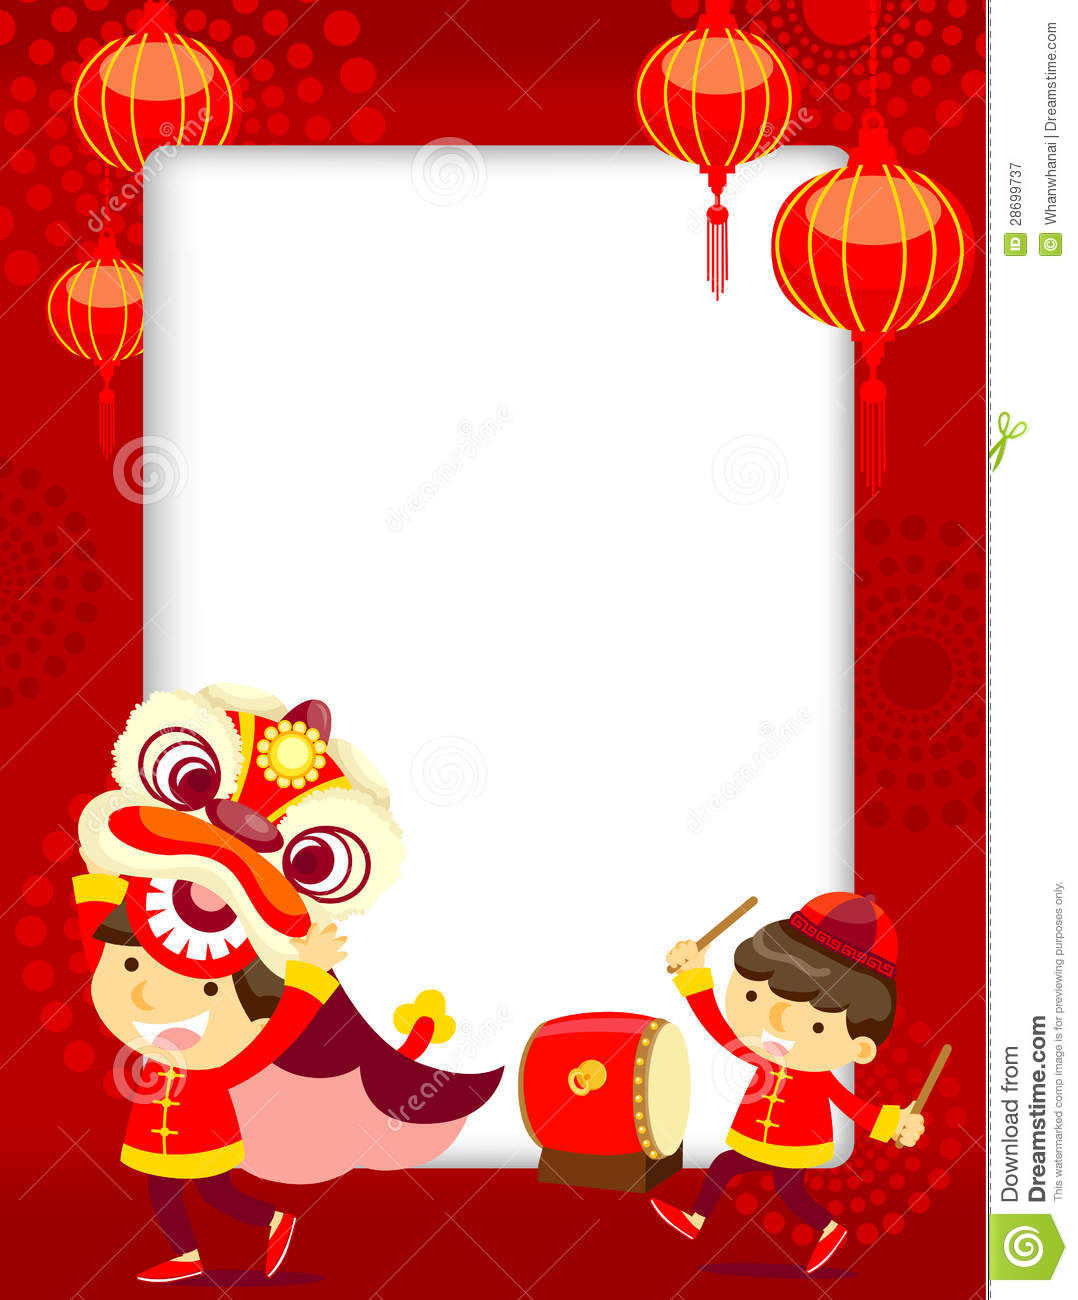 Chinese New Year Greeting Card Royalty Free Stock ...